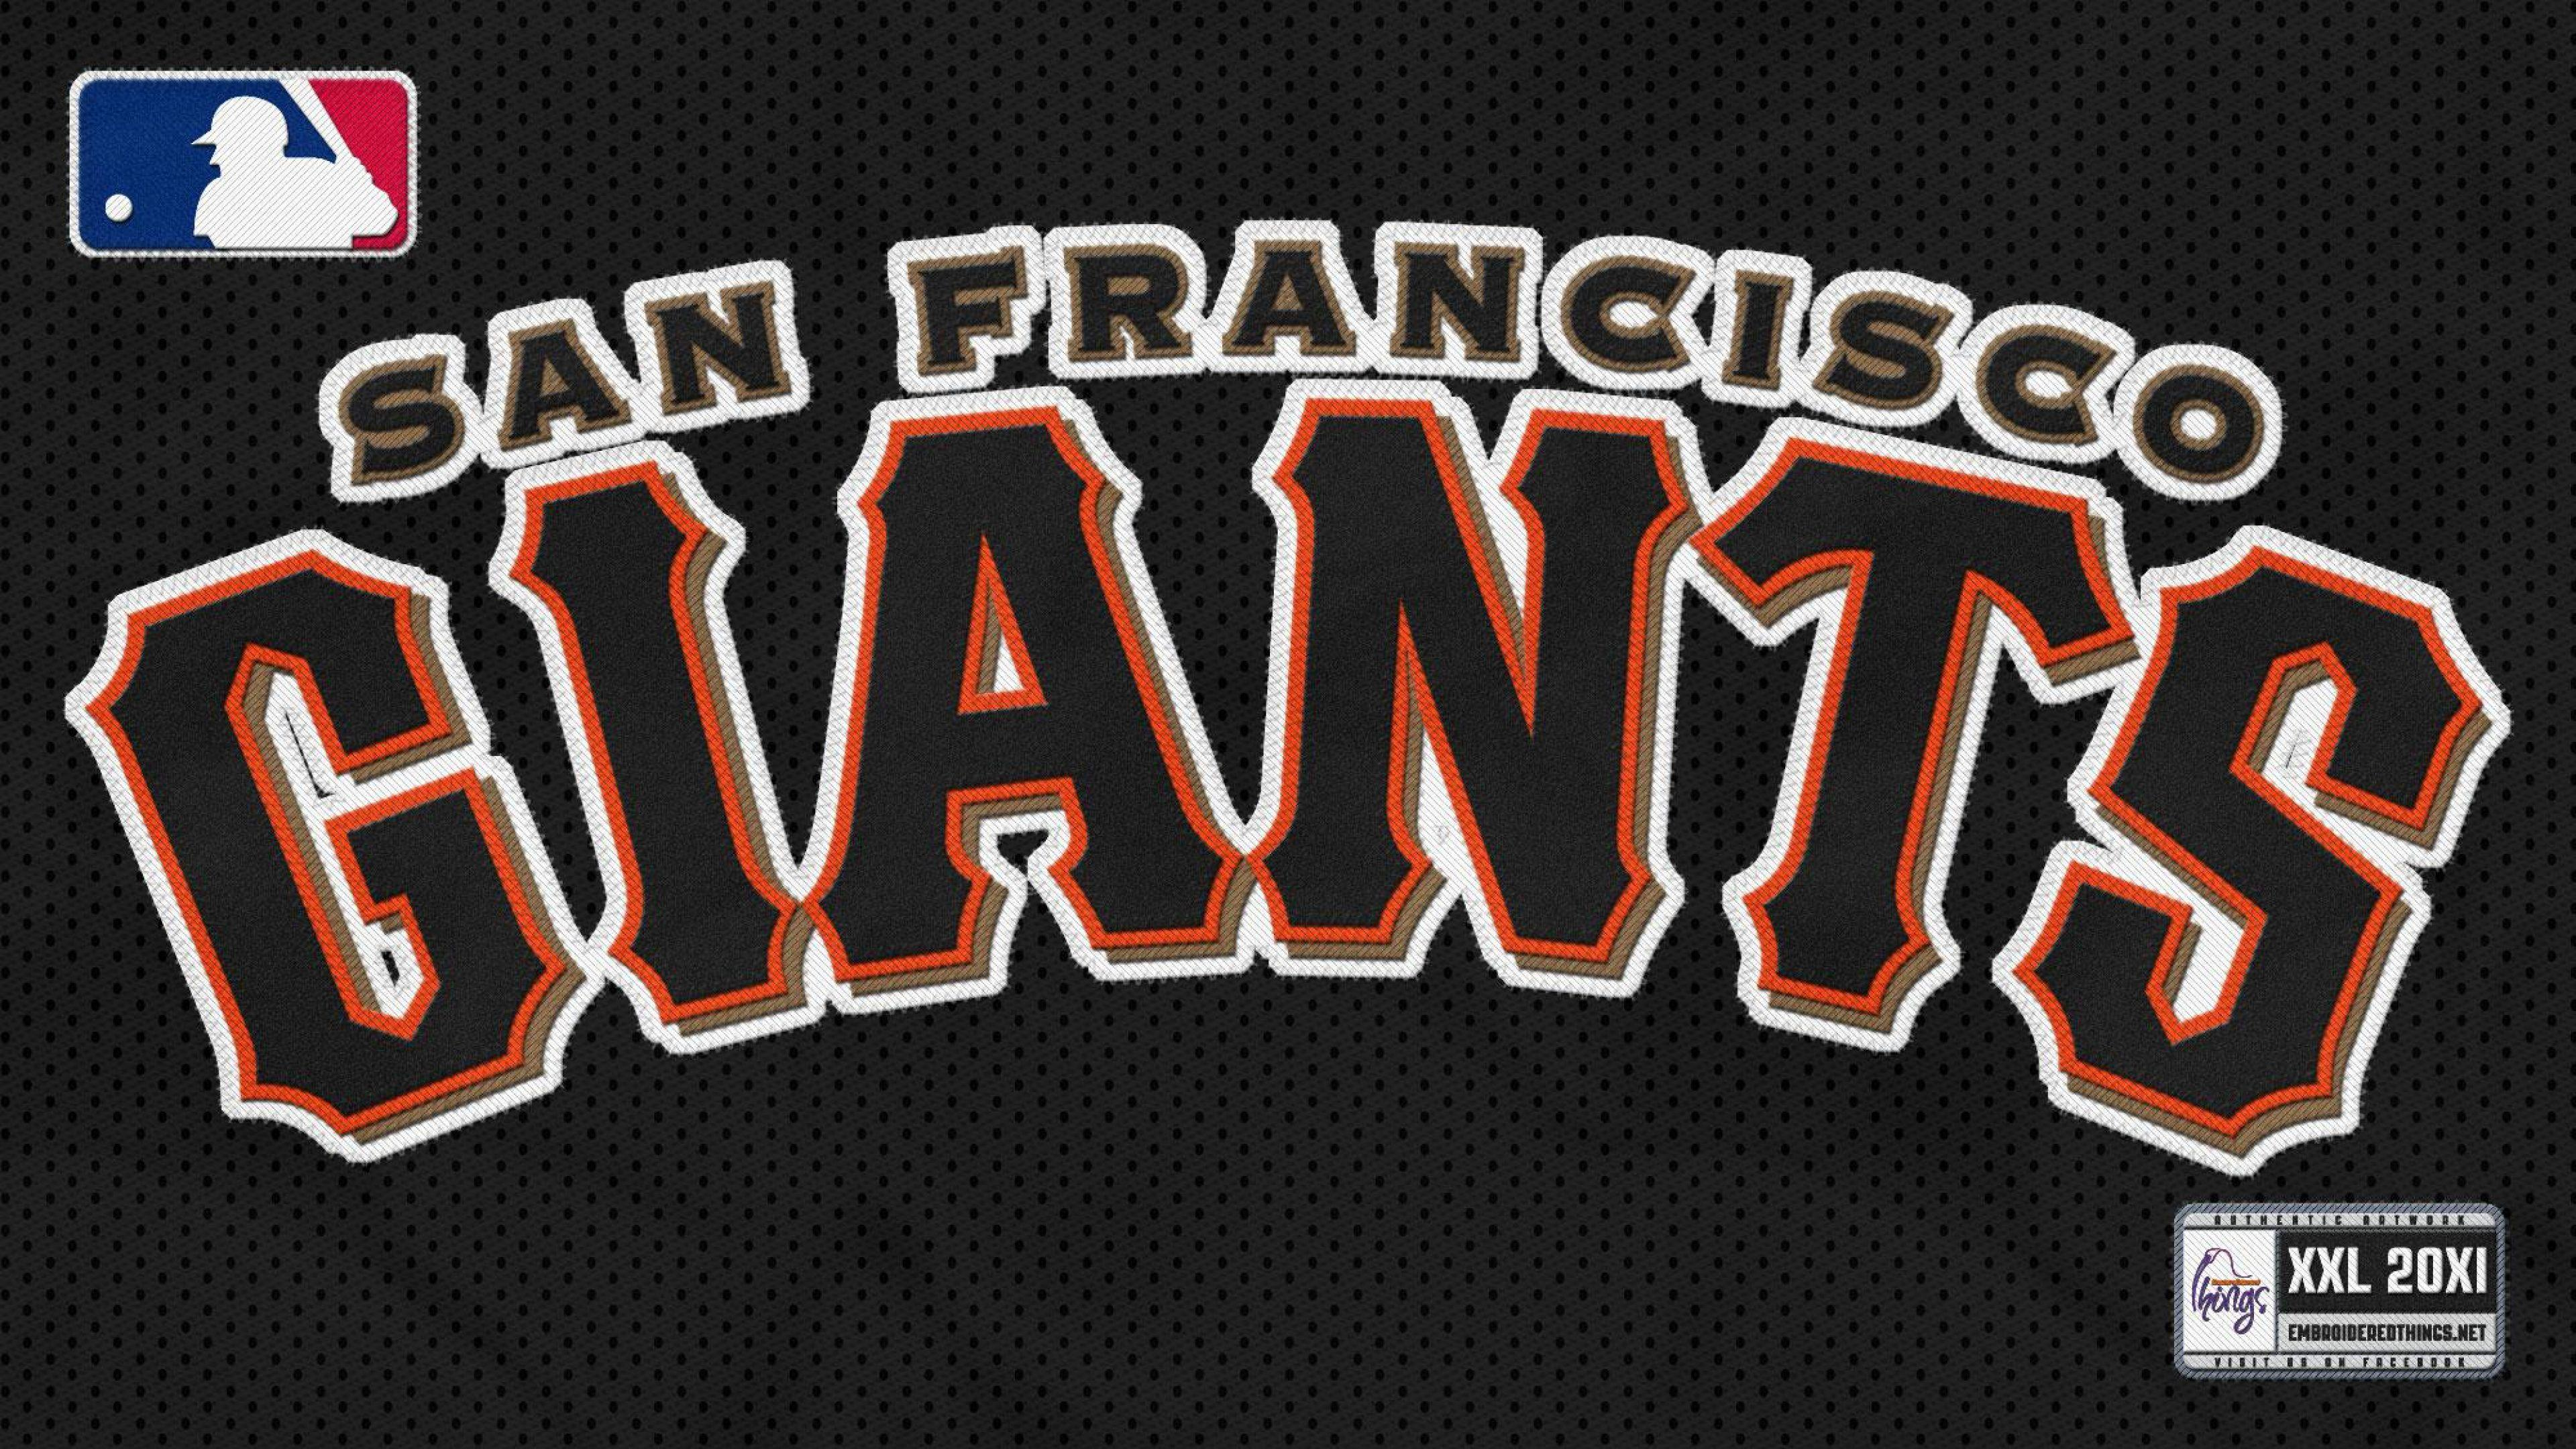 MLB San Francisco Giants Team Logo wallpapers HD 2016 in Baseball